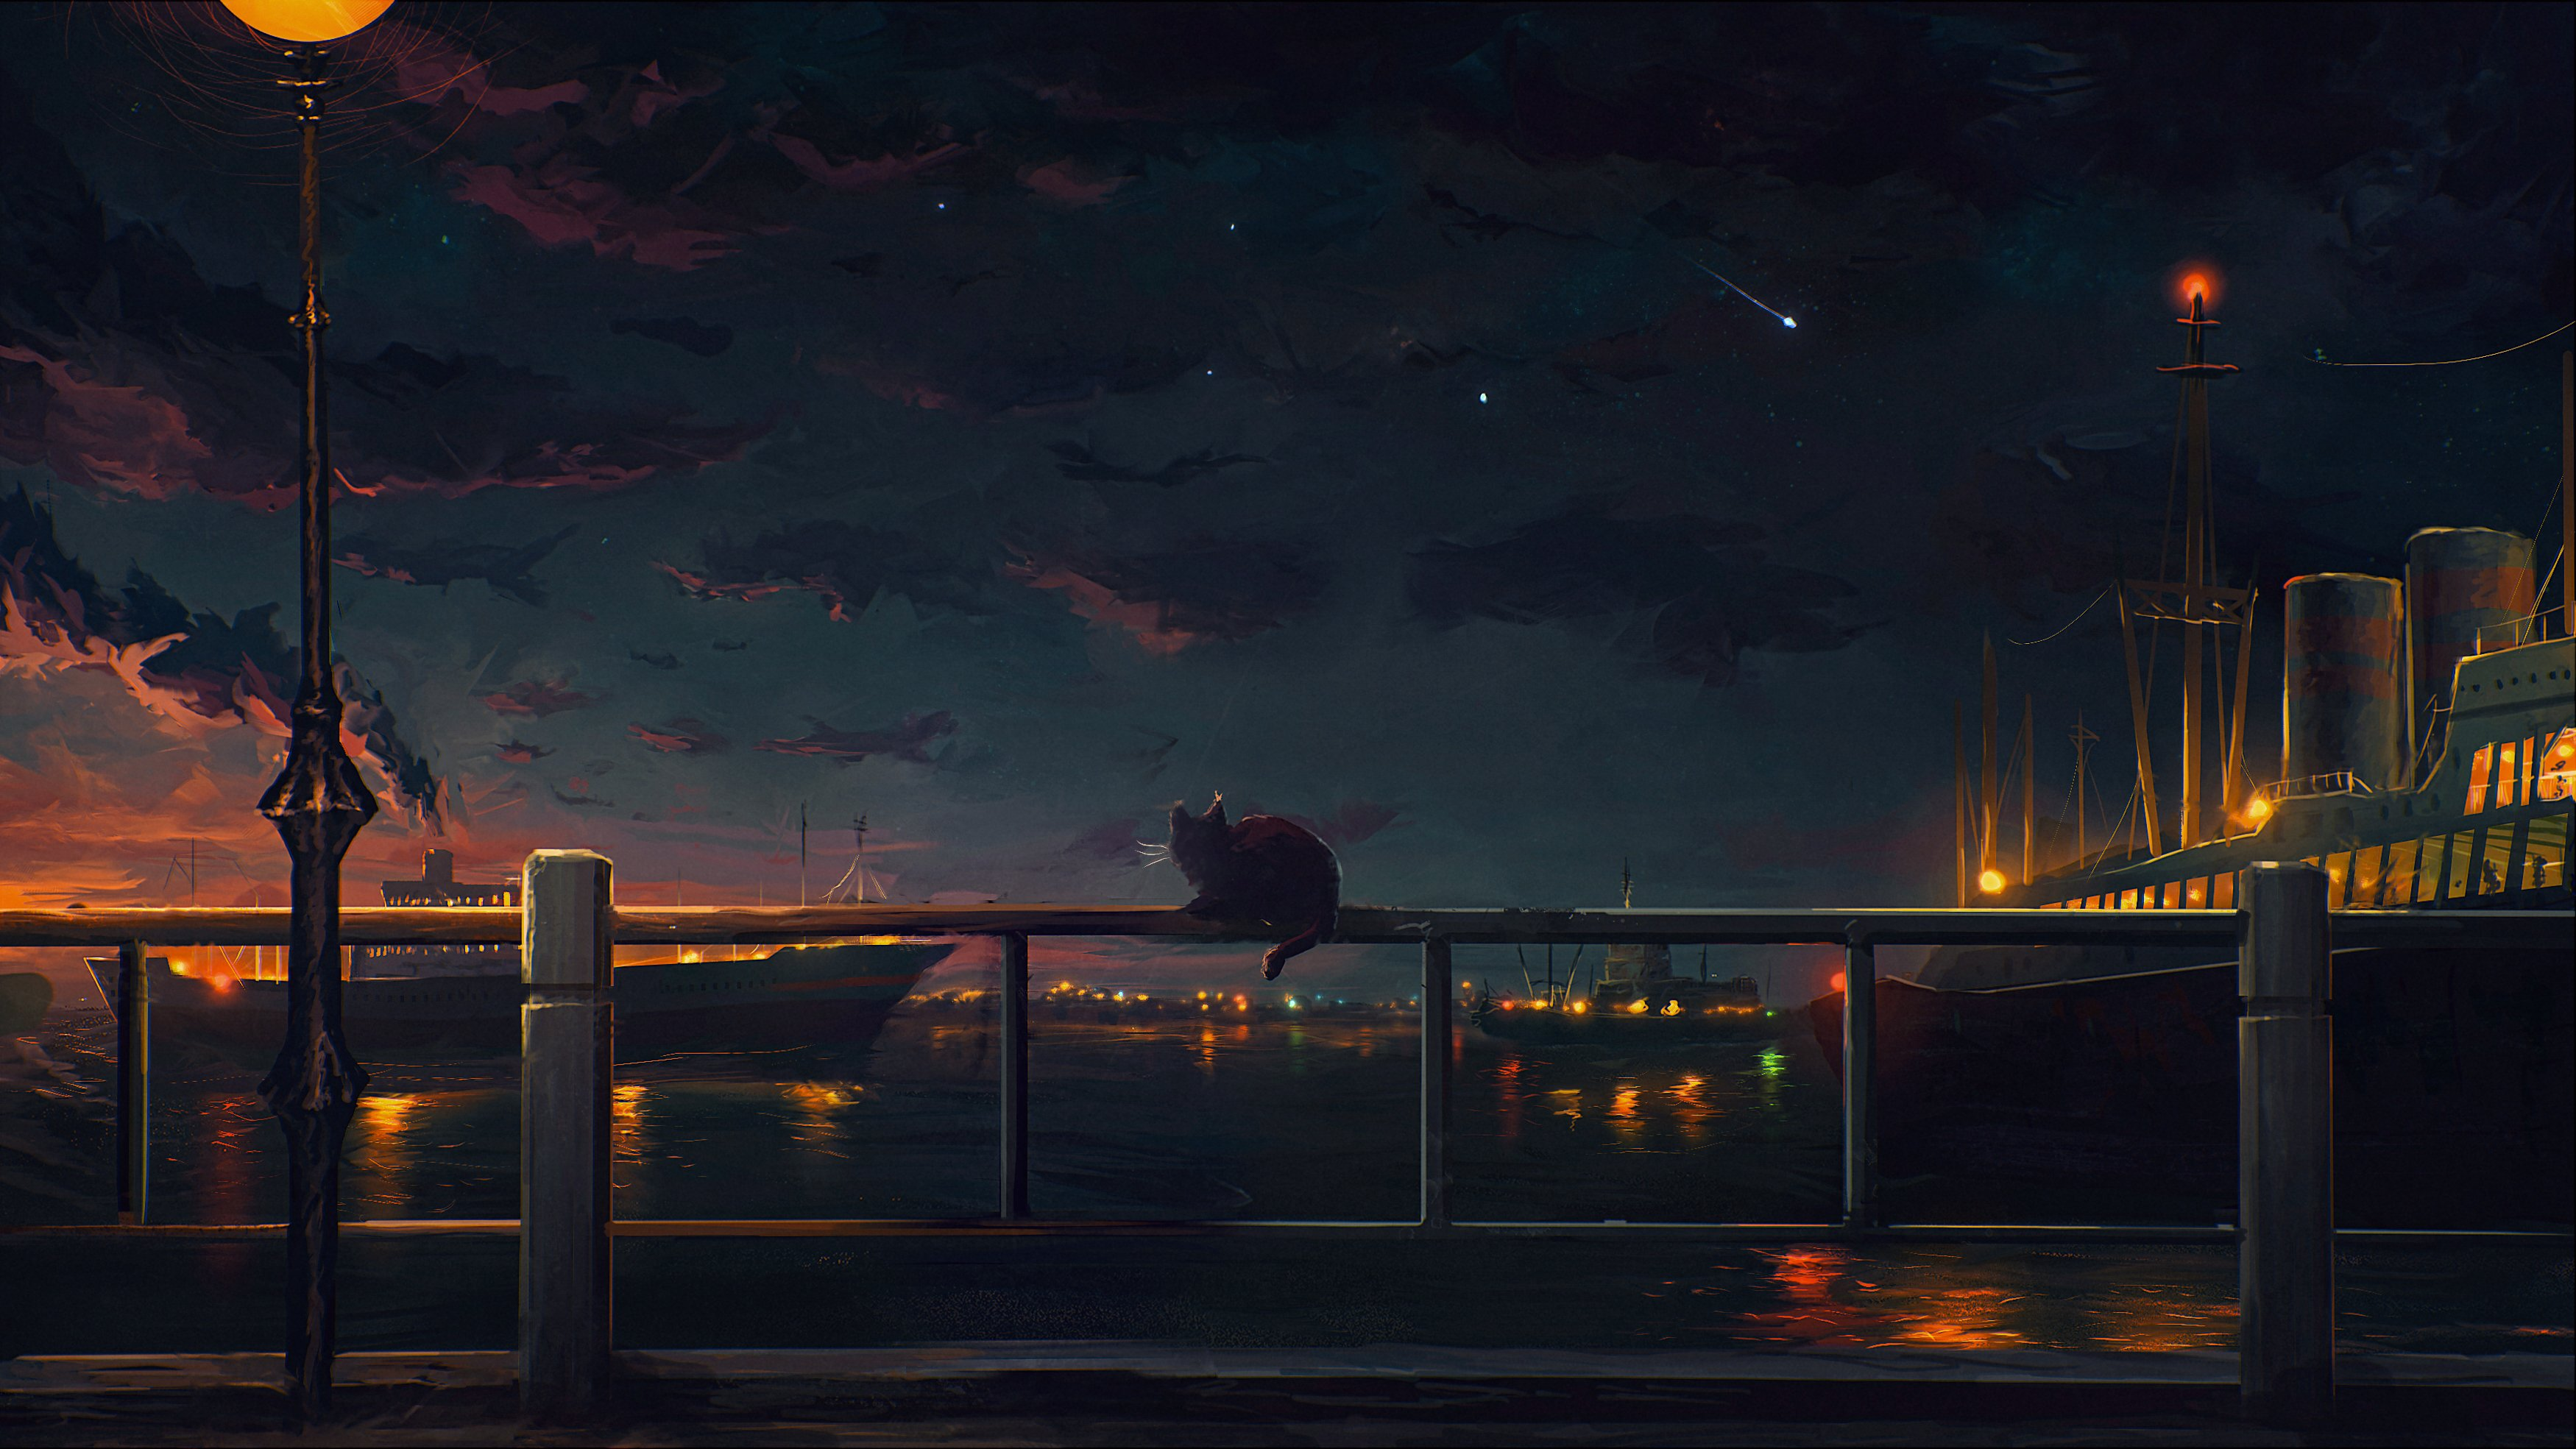 anime scenery city images